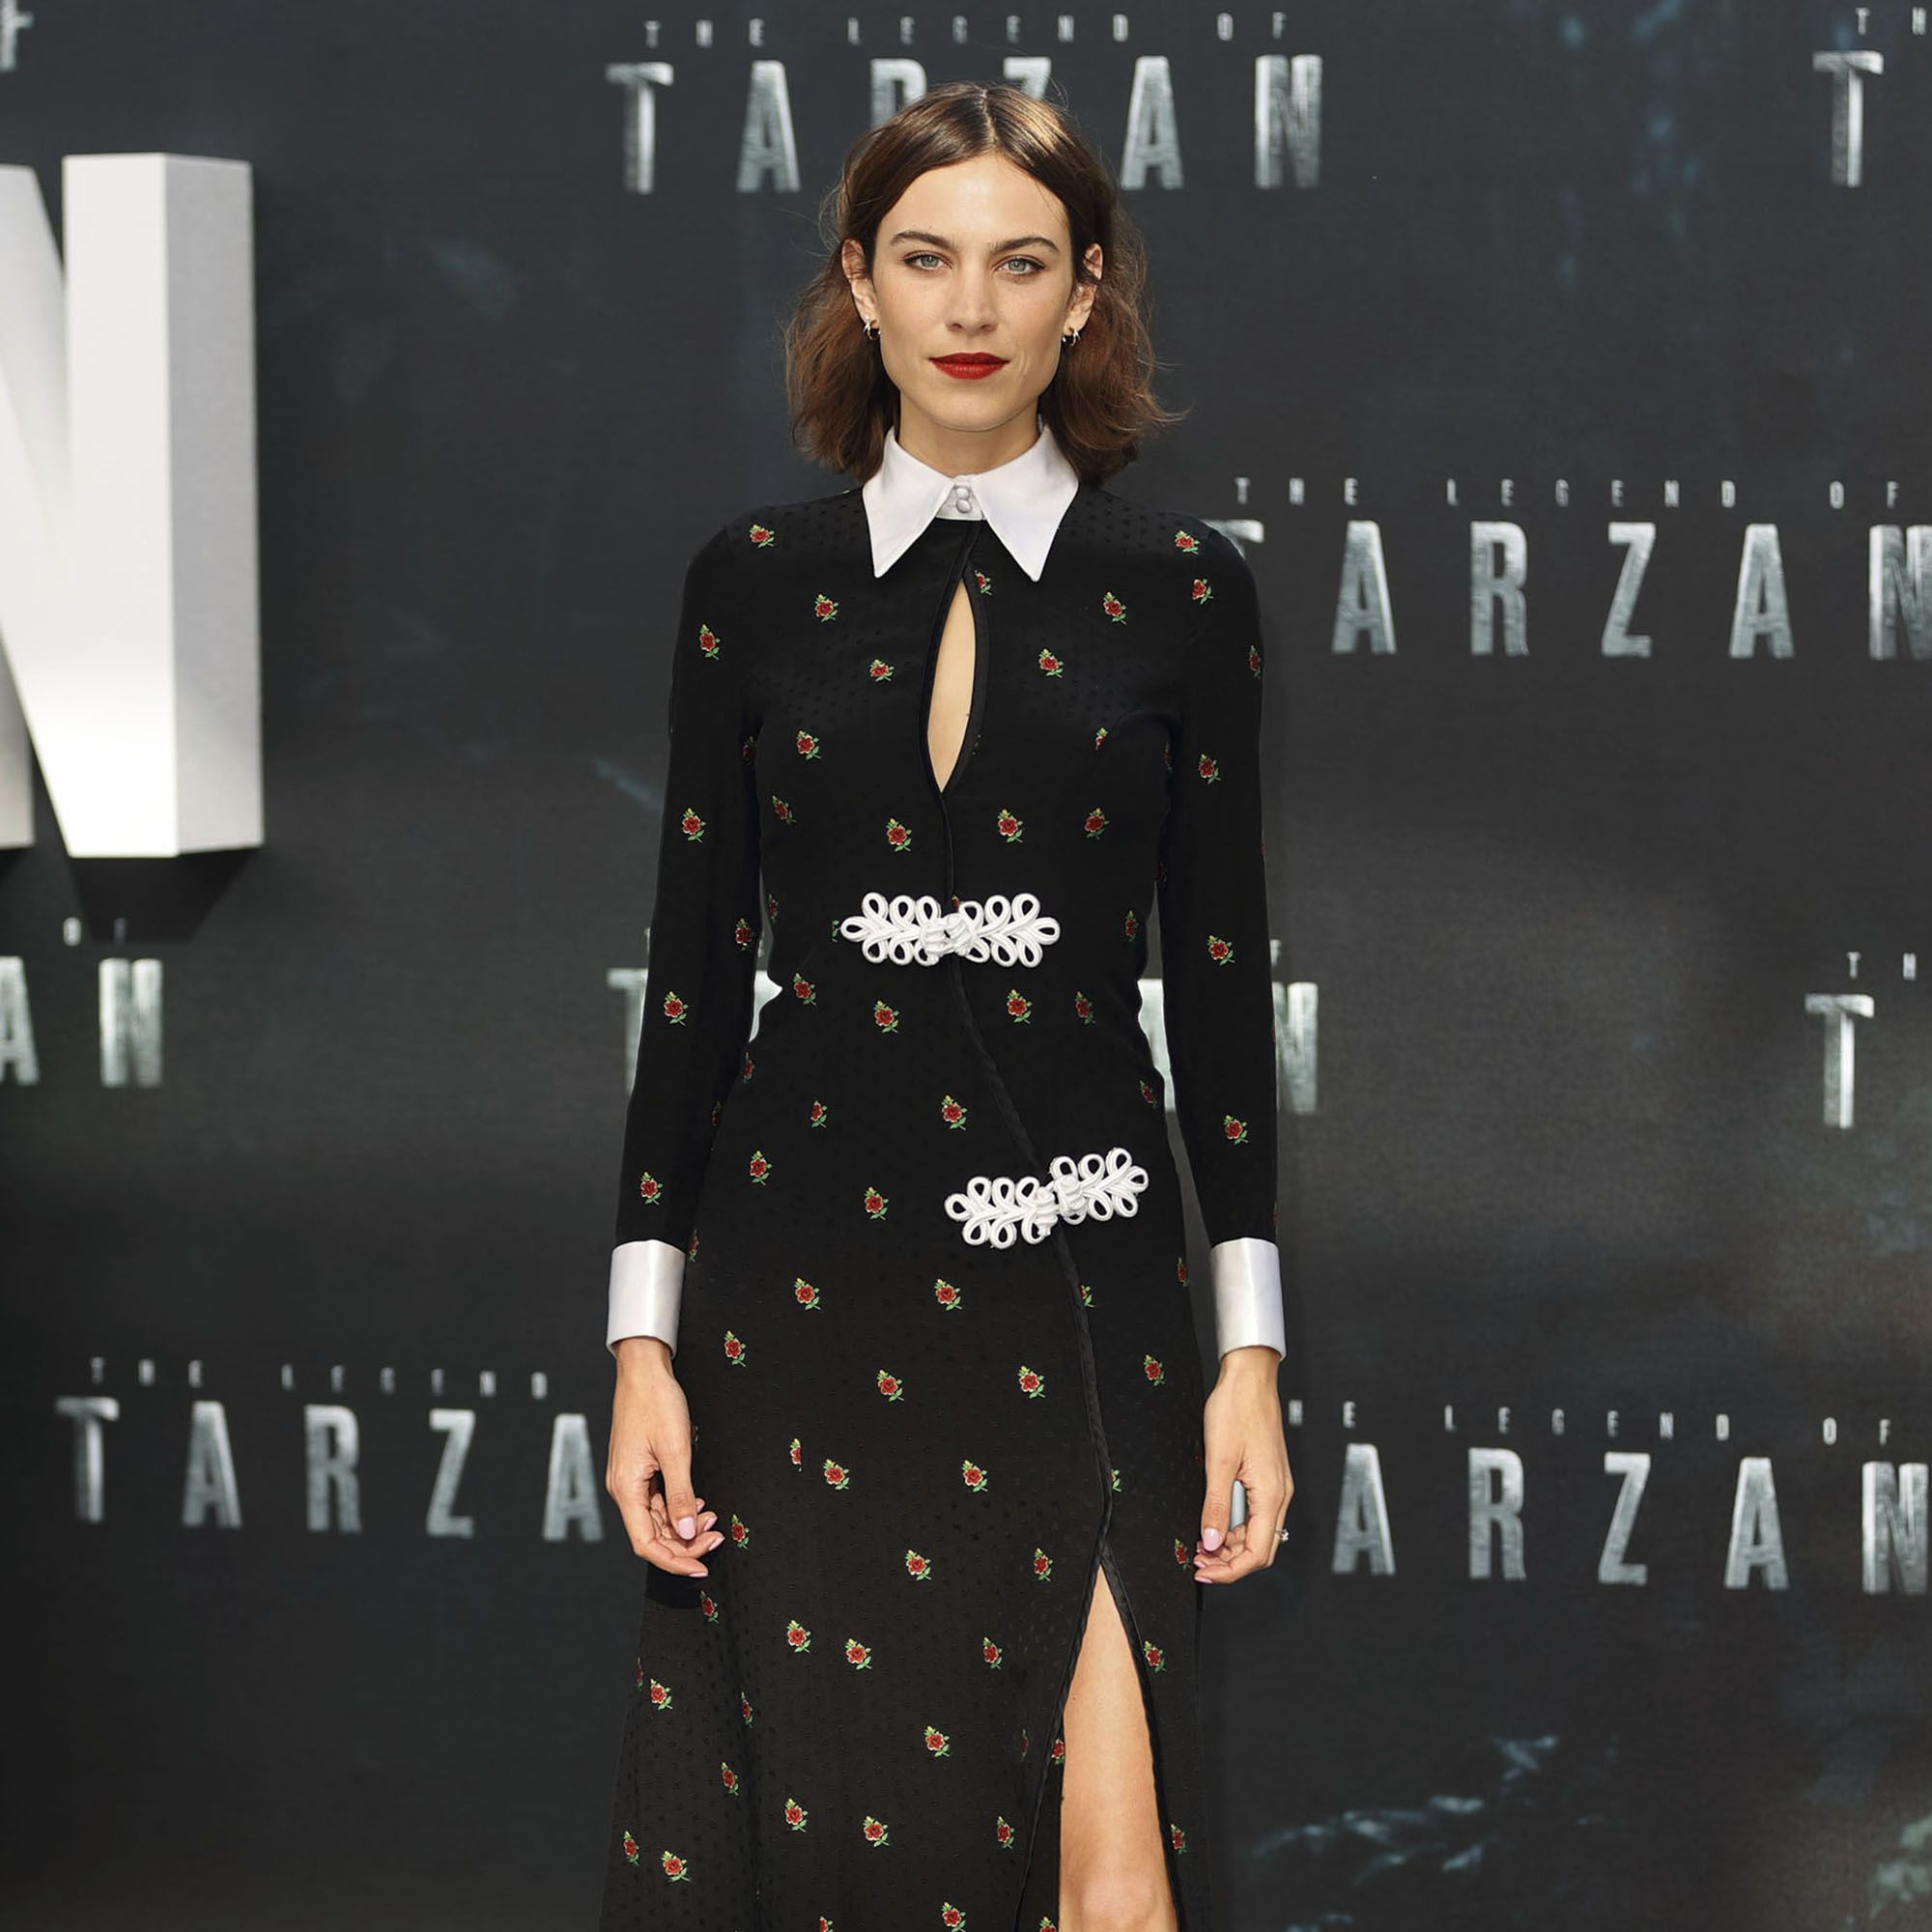 "<p>Alexa Chung<span class=""redactor-invisible-space"" data-verified=""redactor"" data-redactor-tag=""span"" data-redactor-class=""redactor-invisible-space""></span></p>"